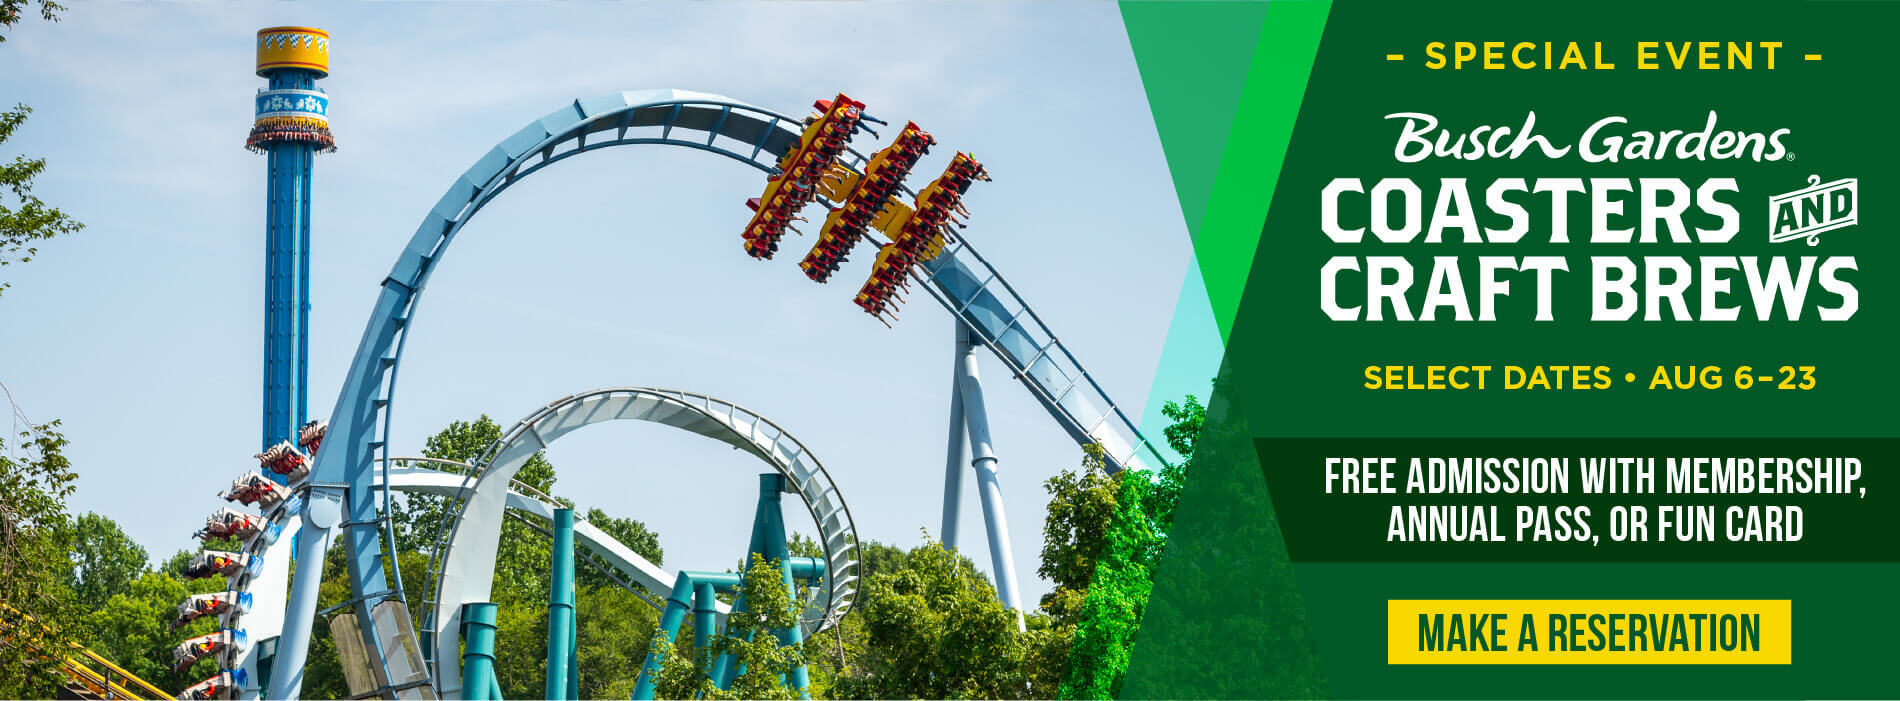 Busch Gardens Williamsburg Coasters and Craft Brews Special Event